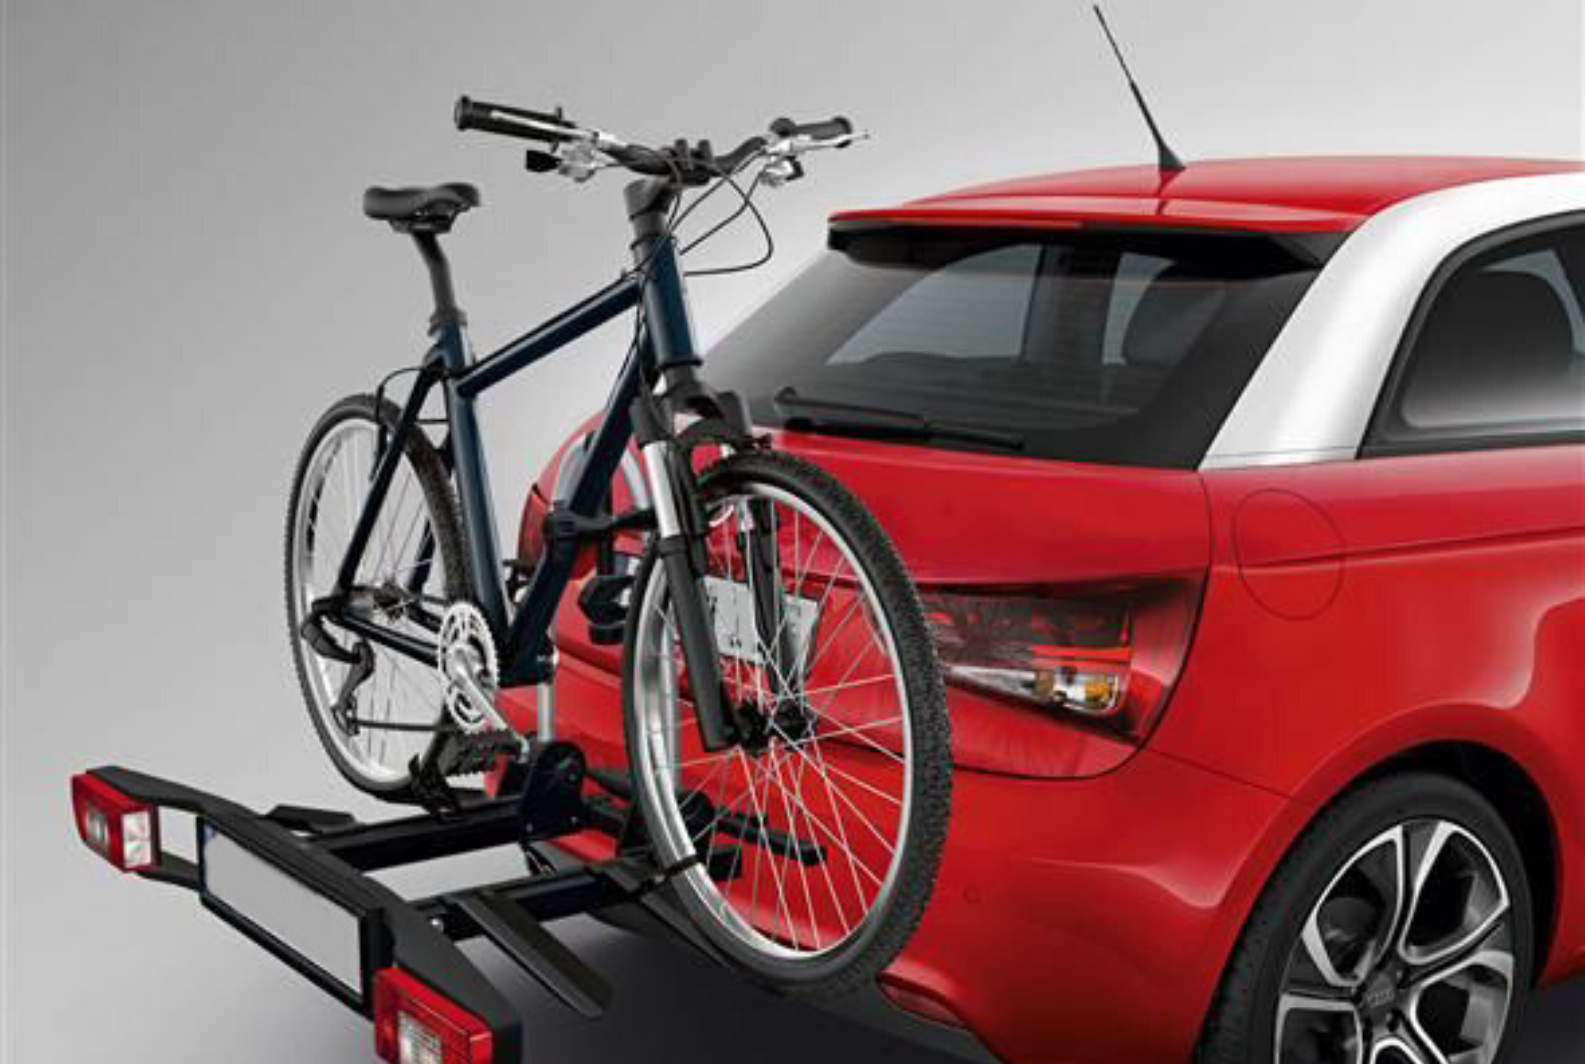 Audi A1 Bike Rack Buyers Guide 2020